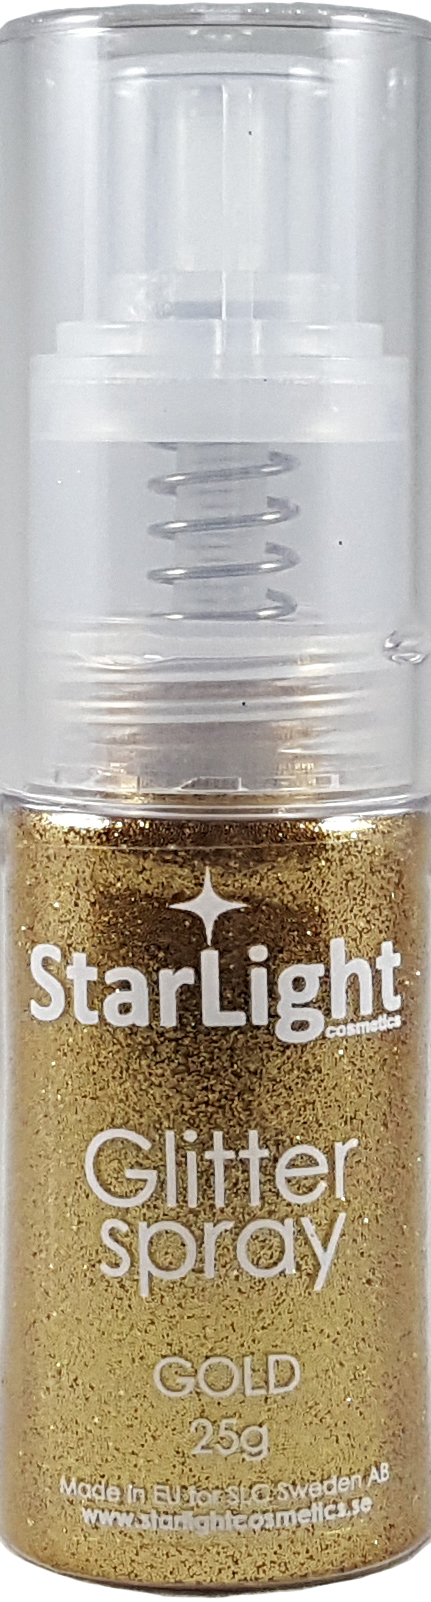 Naglar Glitter Spray Gold - 25 gram